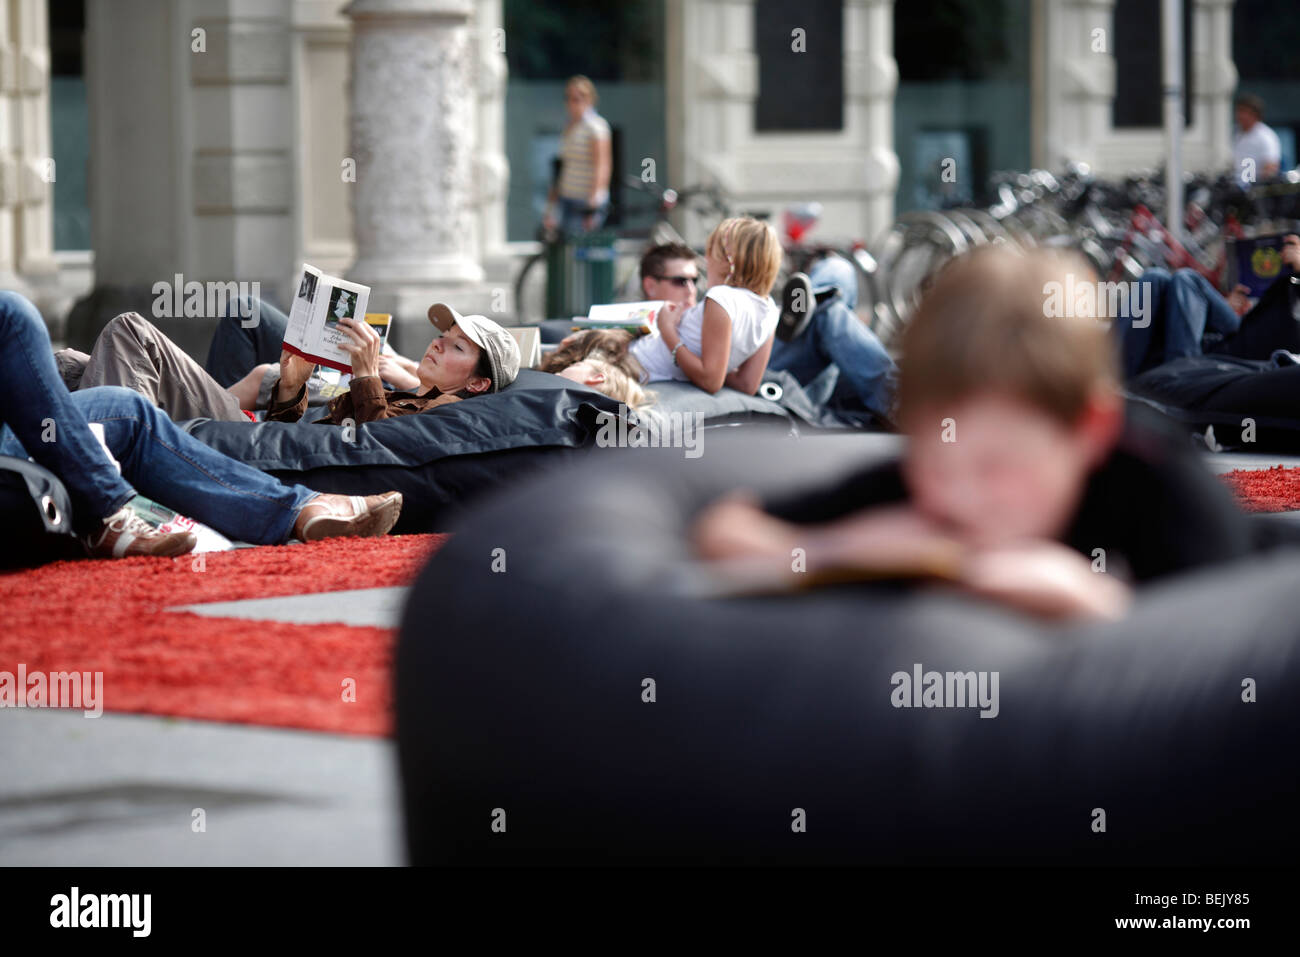 People read while lying on beanbag cushions at an outdoor library in the Hauptplatz in the city of Graz in Austria - Stock Image